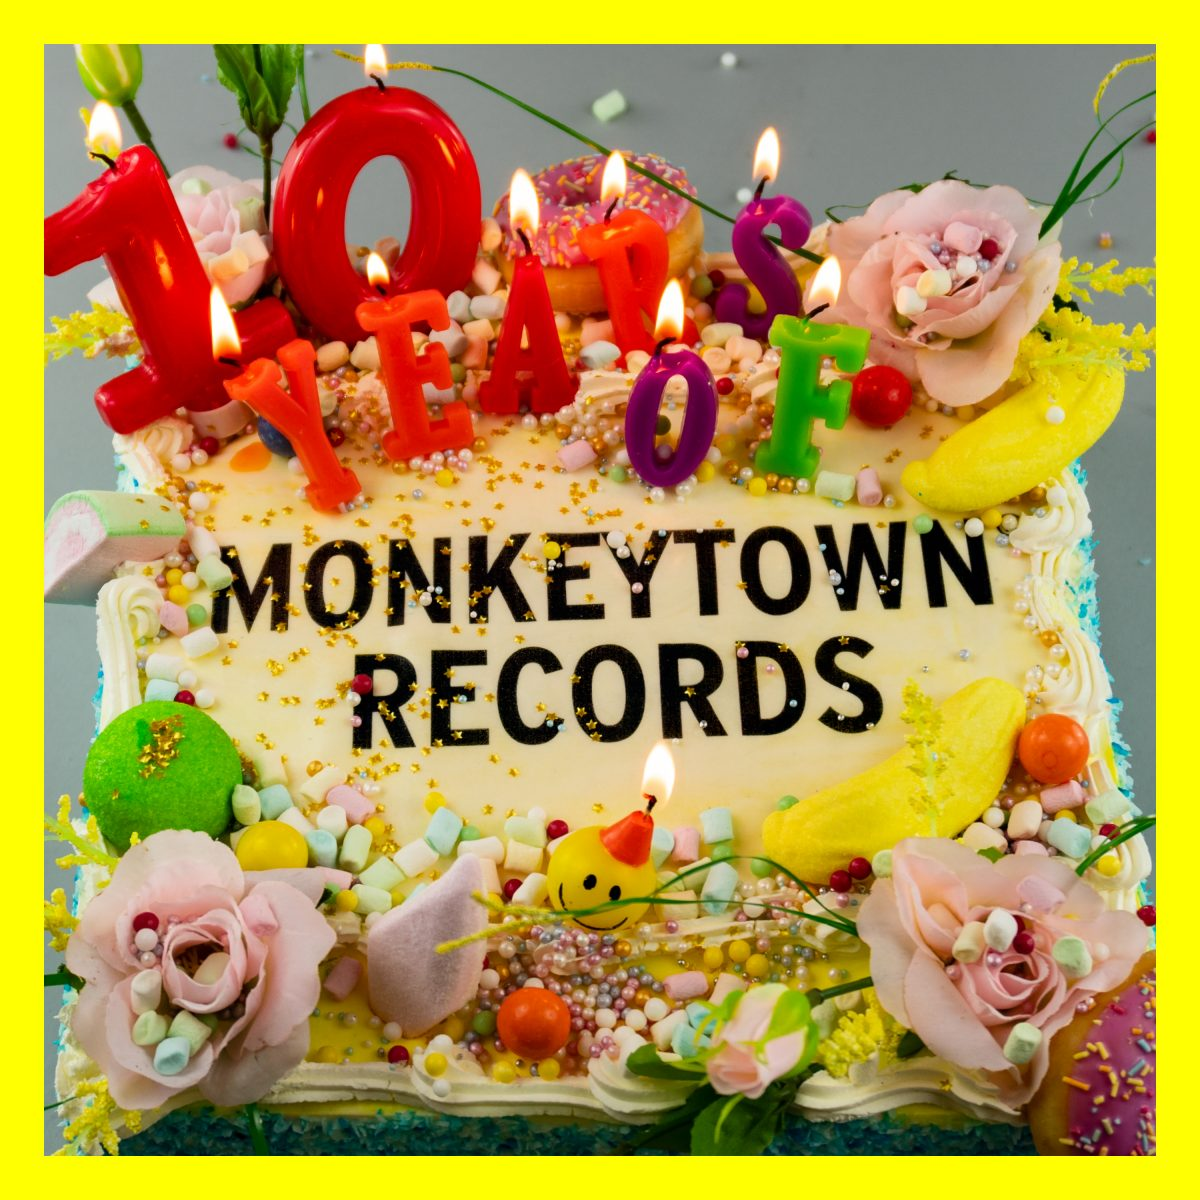 Monkeytown Records